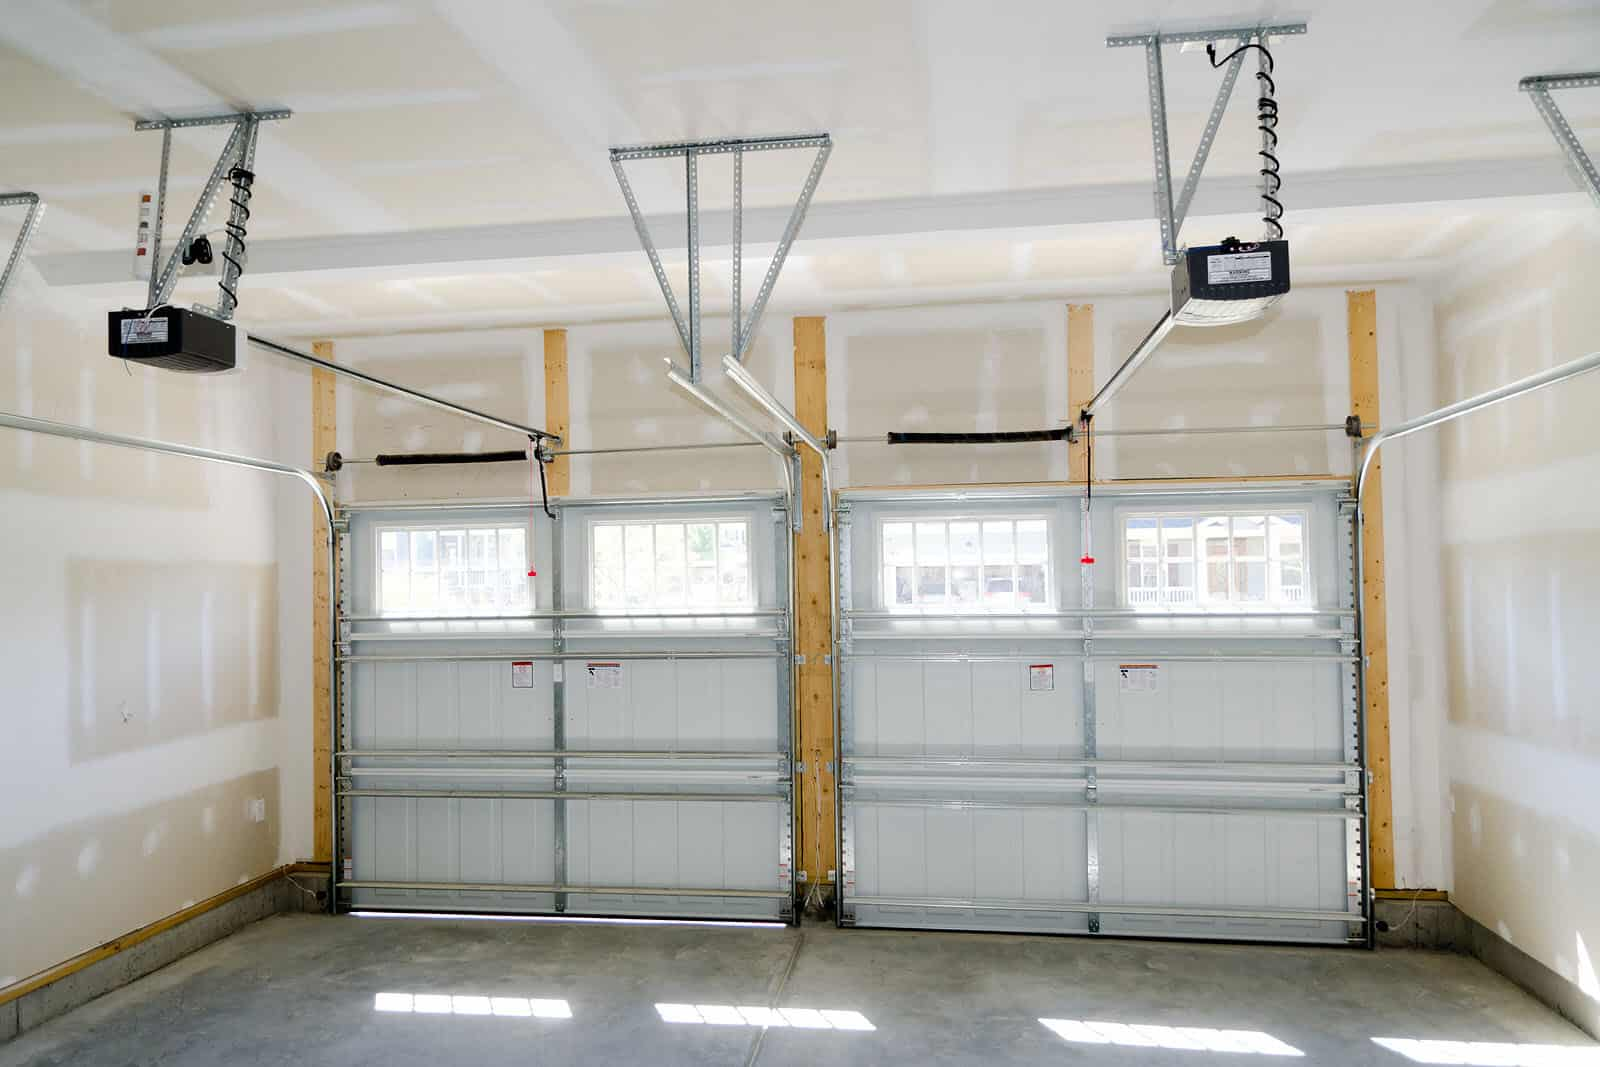 4 Easy Ways to Increase Your Garage Security